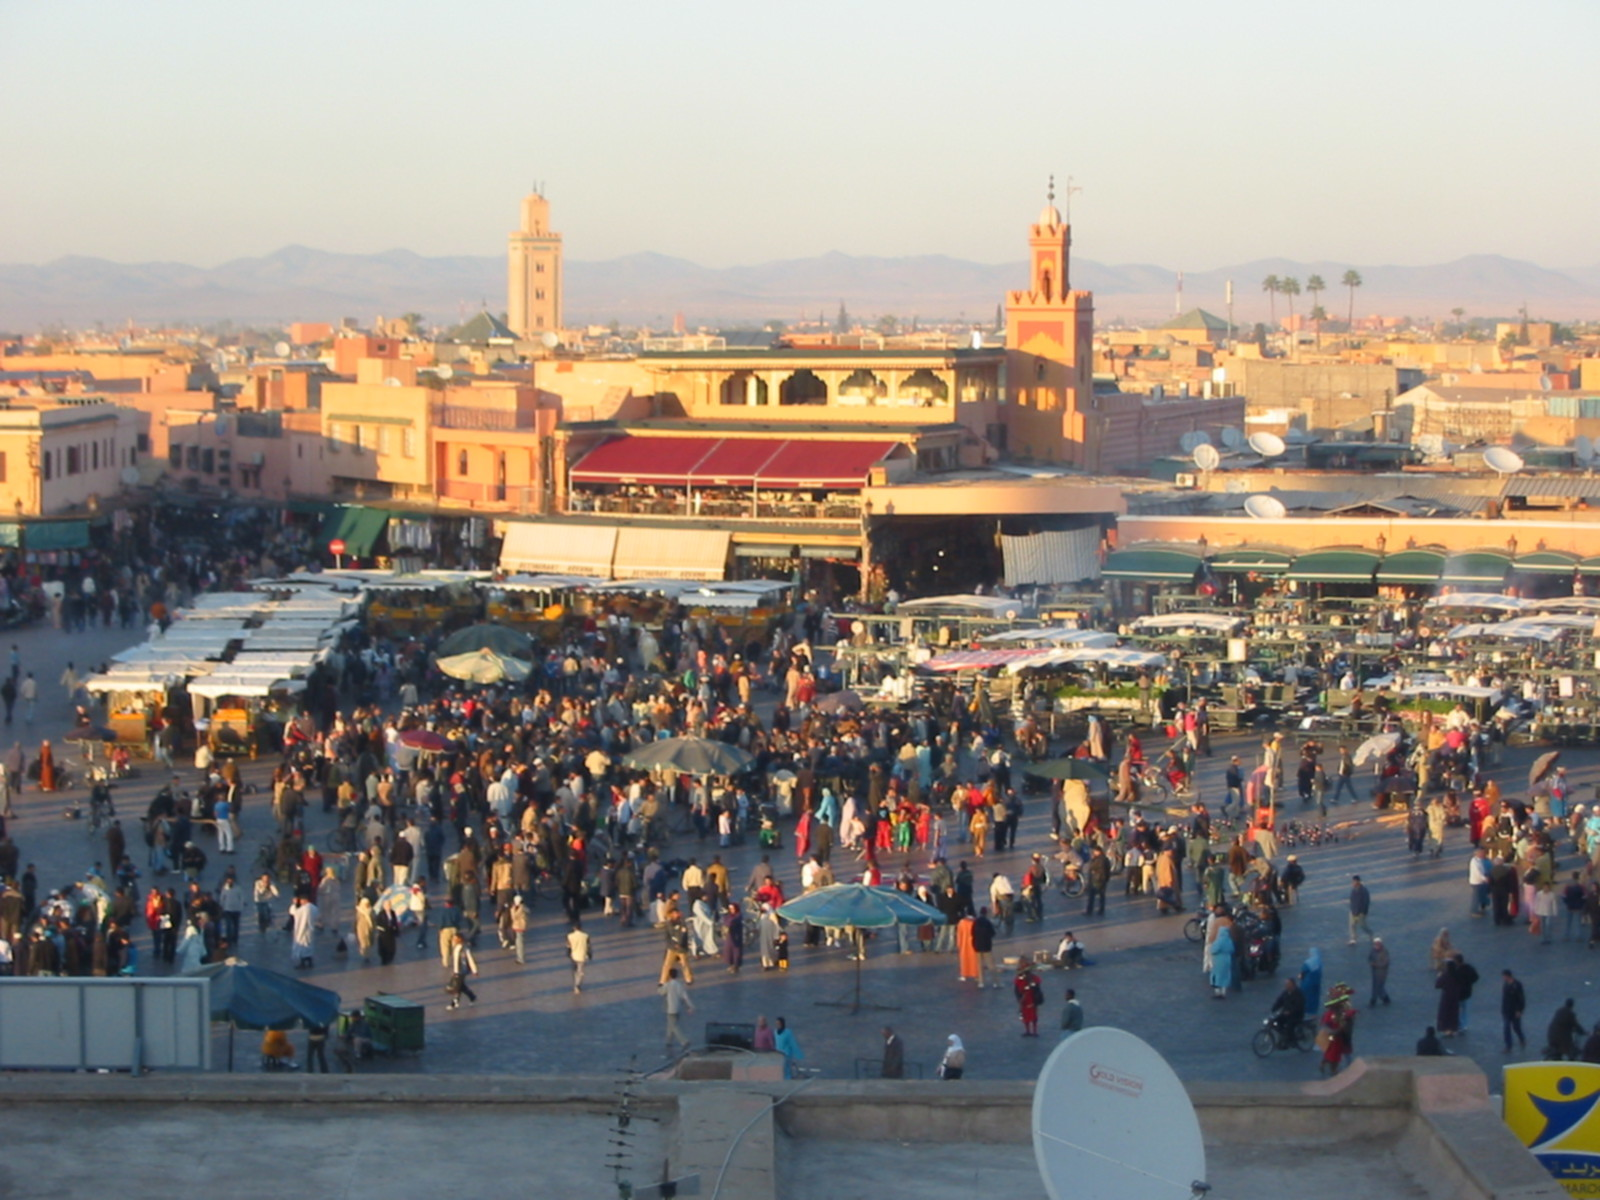 https://i0.wp.com/wikitravel.org/upload/shared/f/f1/Morroco_Djemaa_el_Fna_Evening.jpg